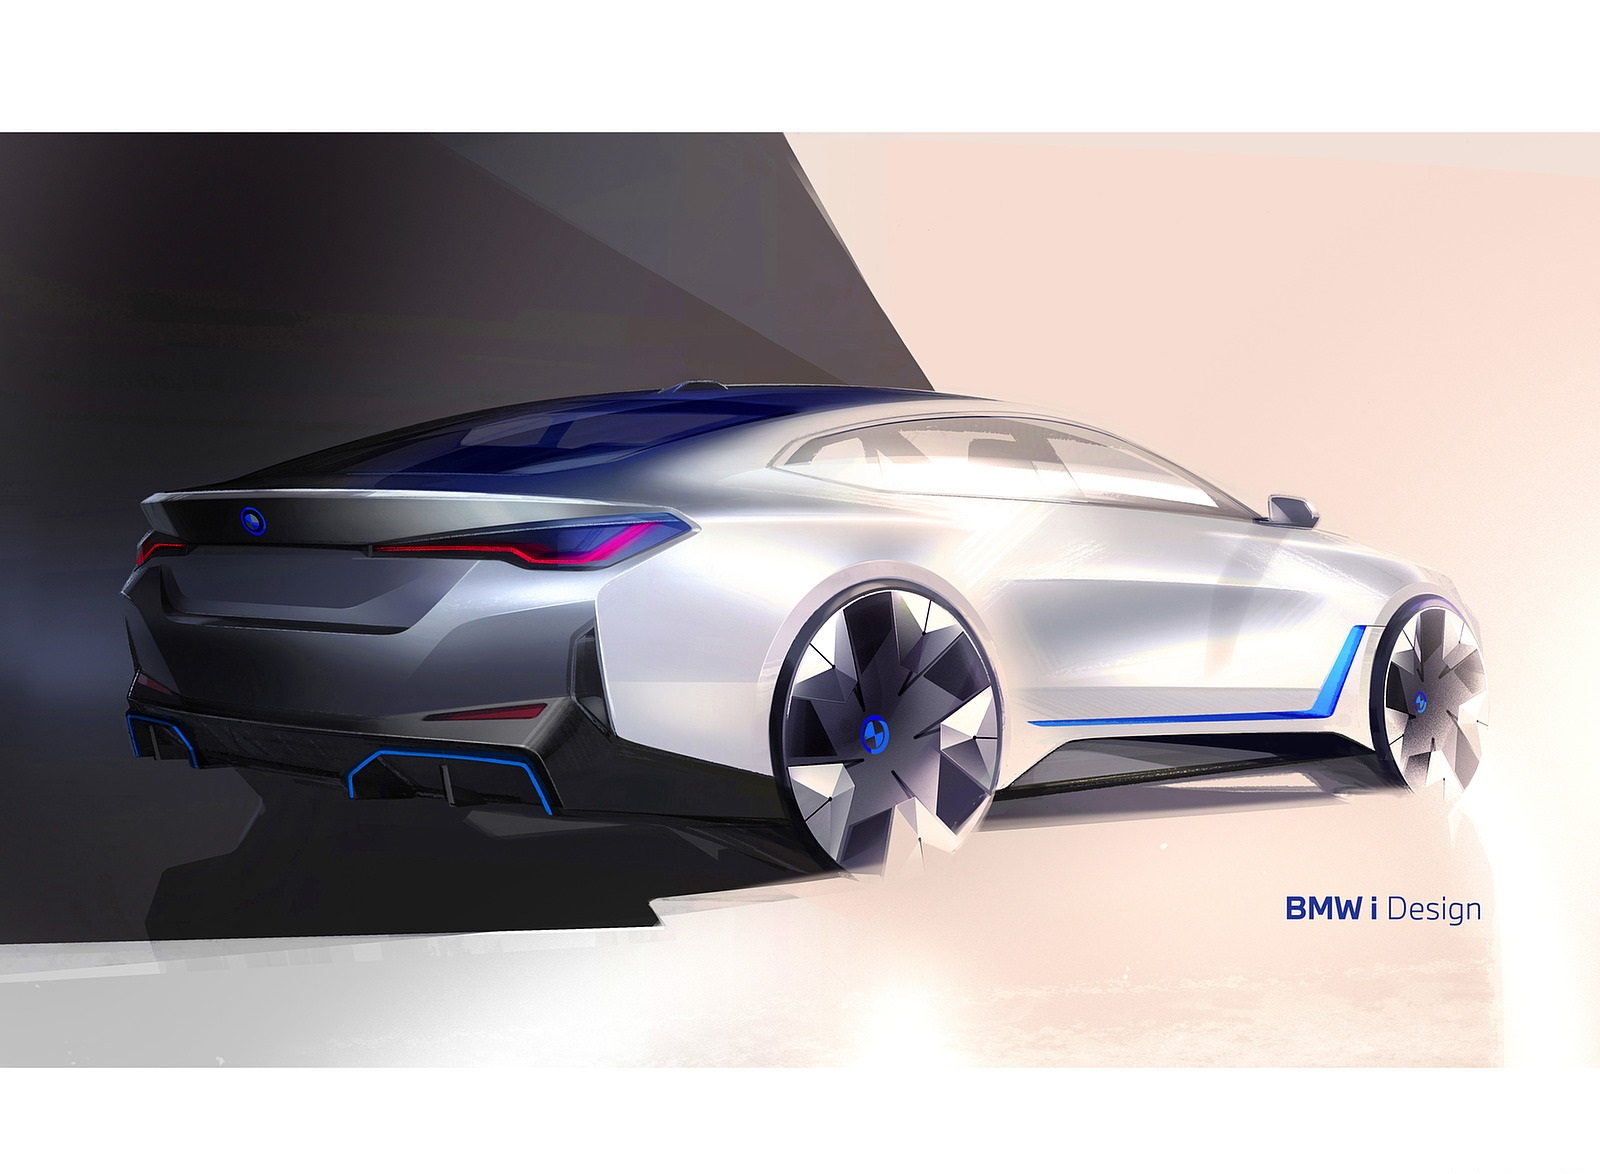 2022 BMW i4 Design Sketch Wallpapers (8)